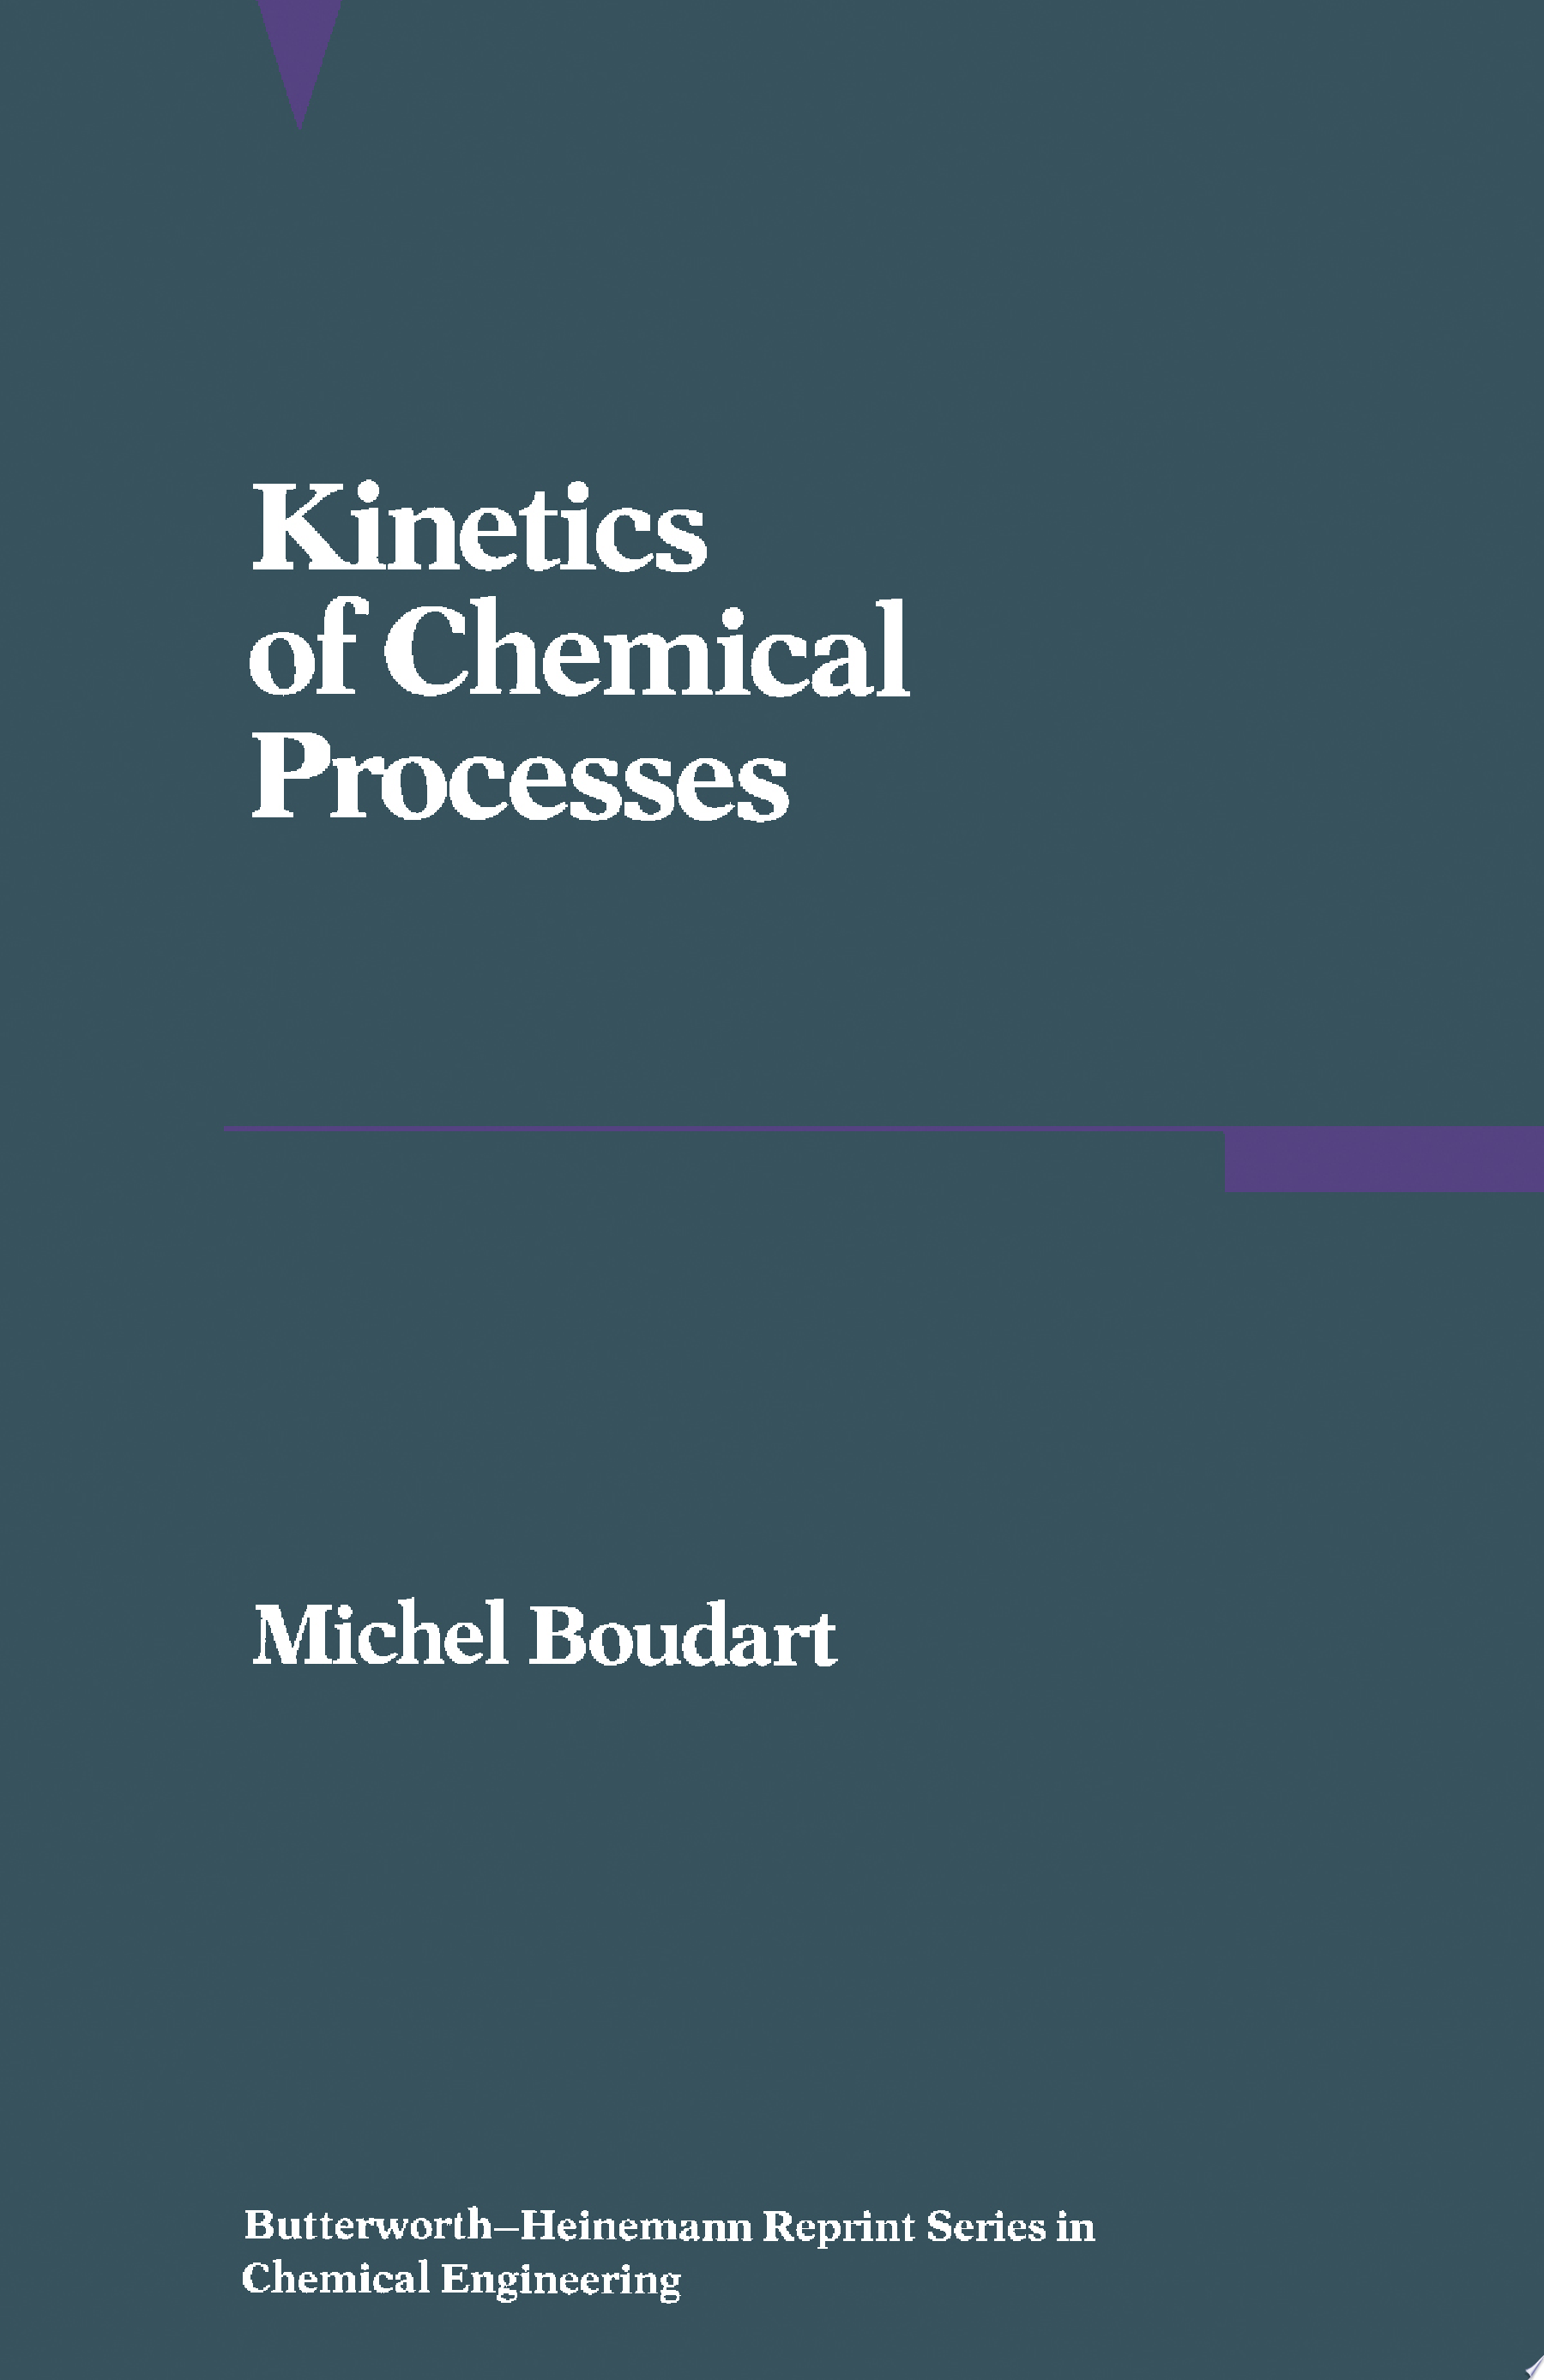 Kinetics of Chemical Processes